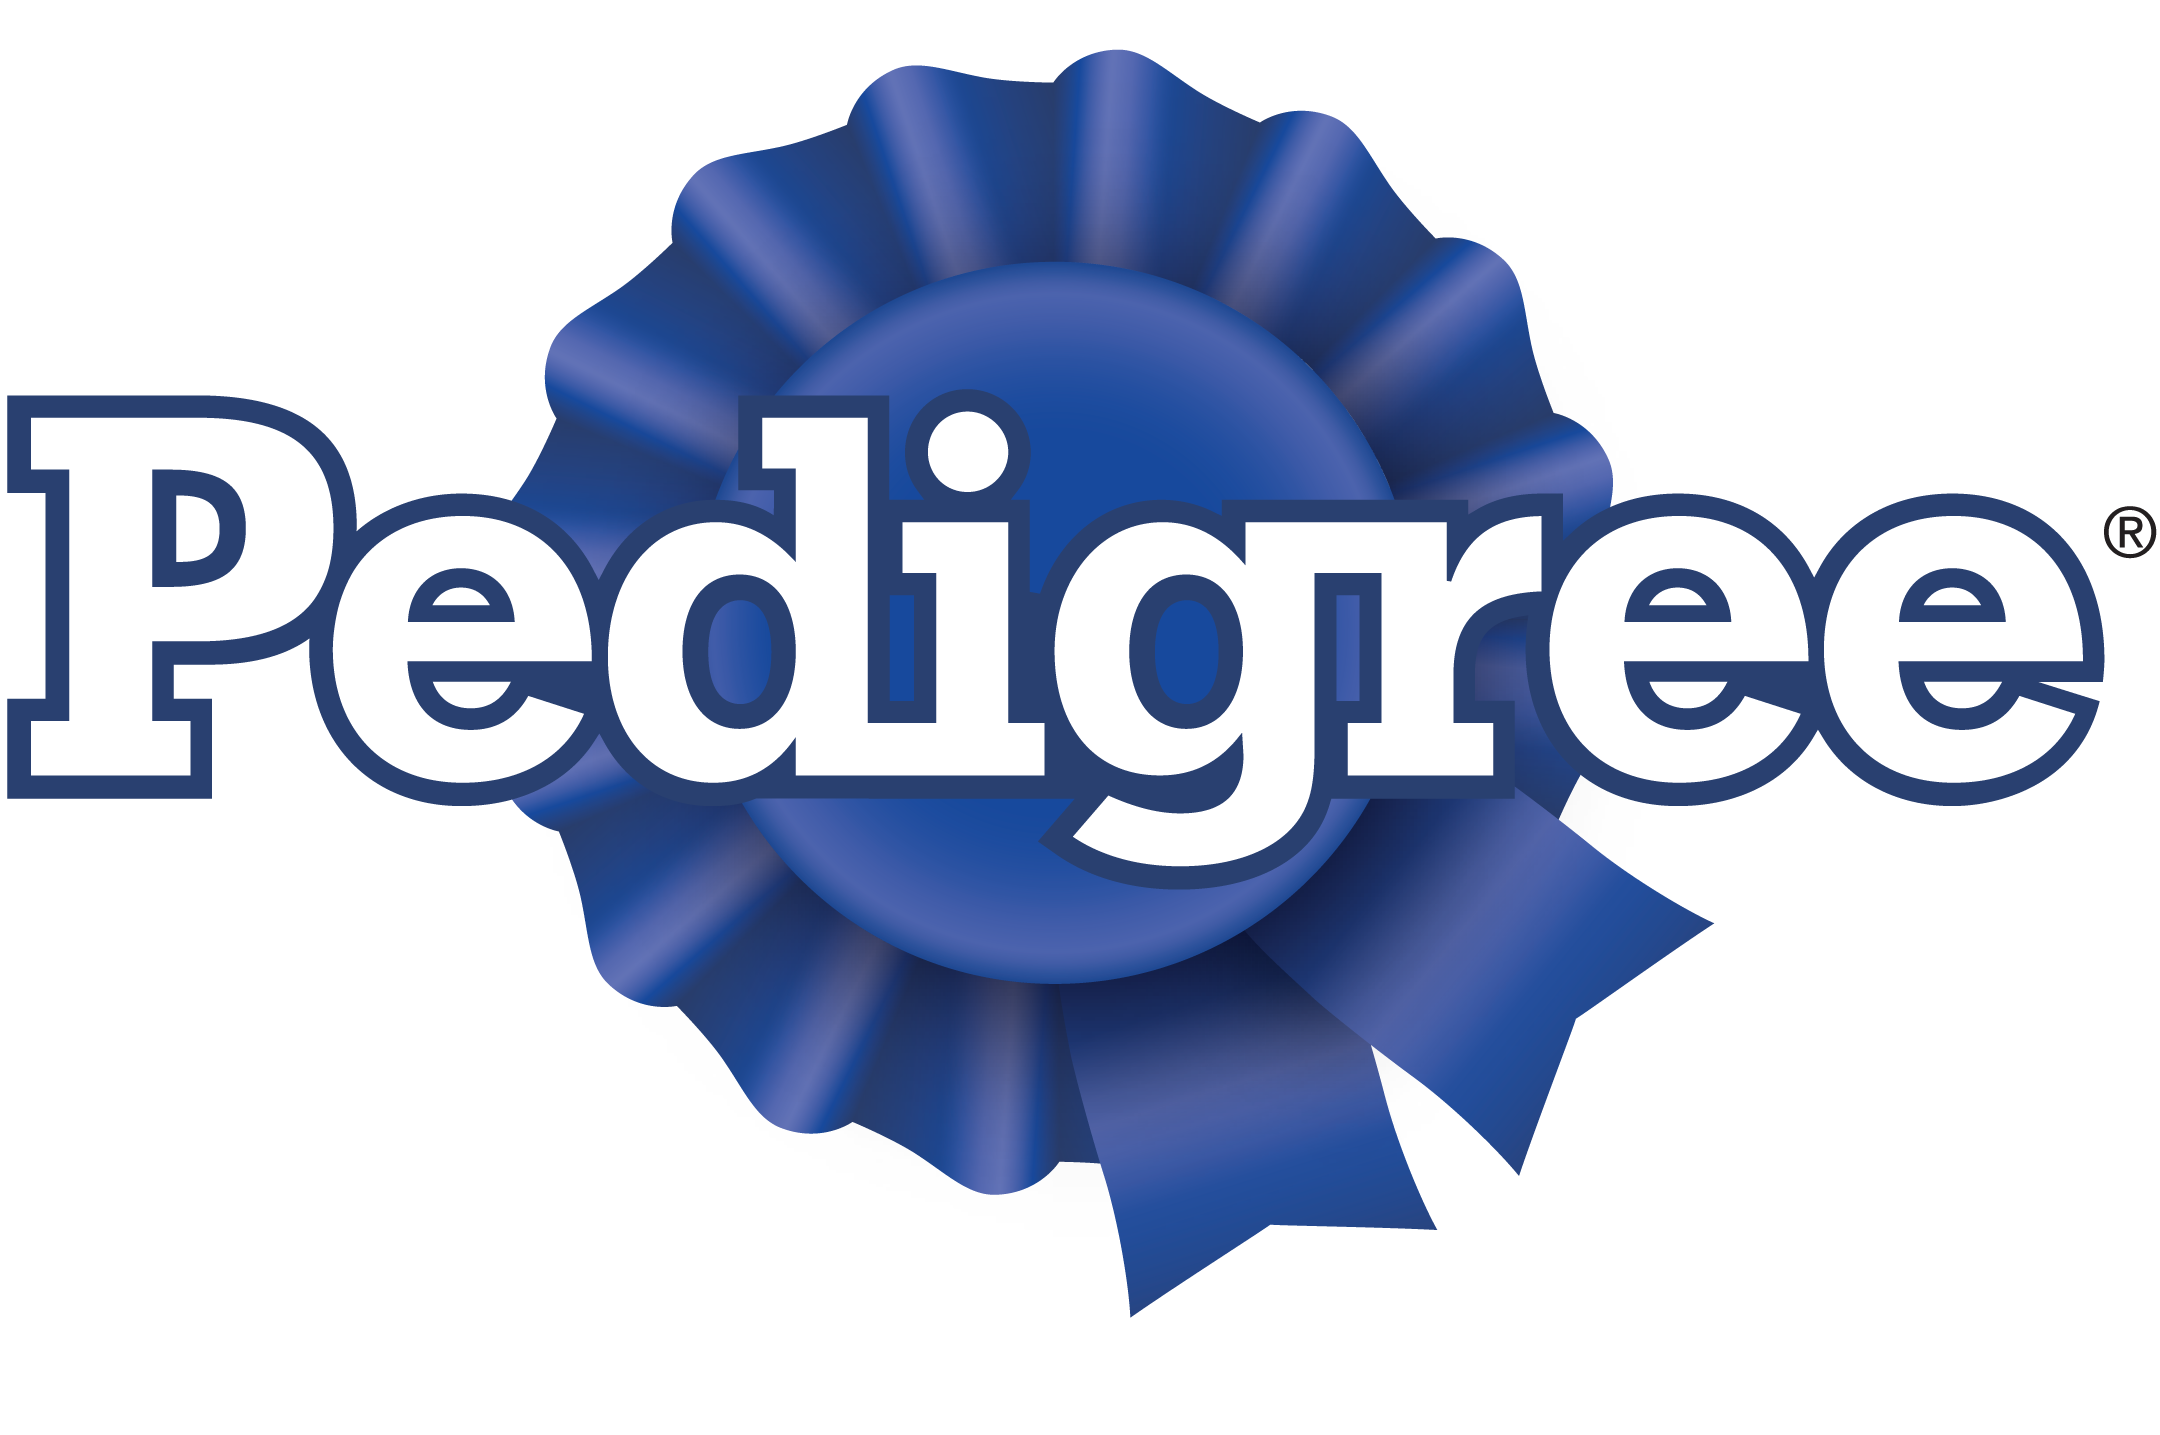 pedigree logo 6 - Pedigree Logo